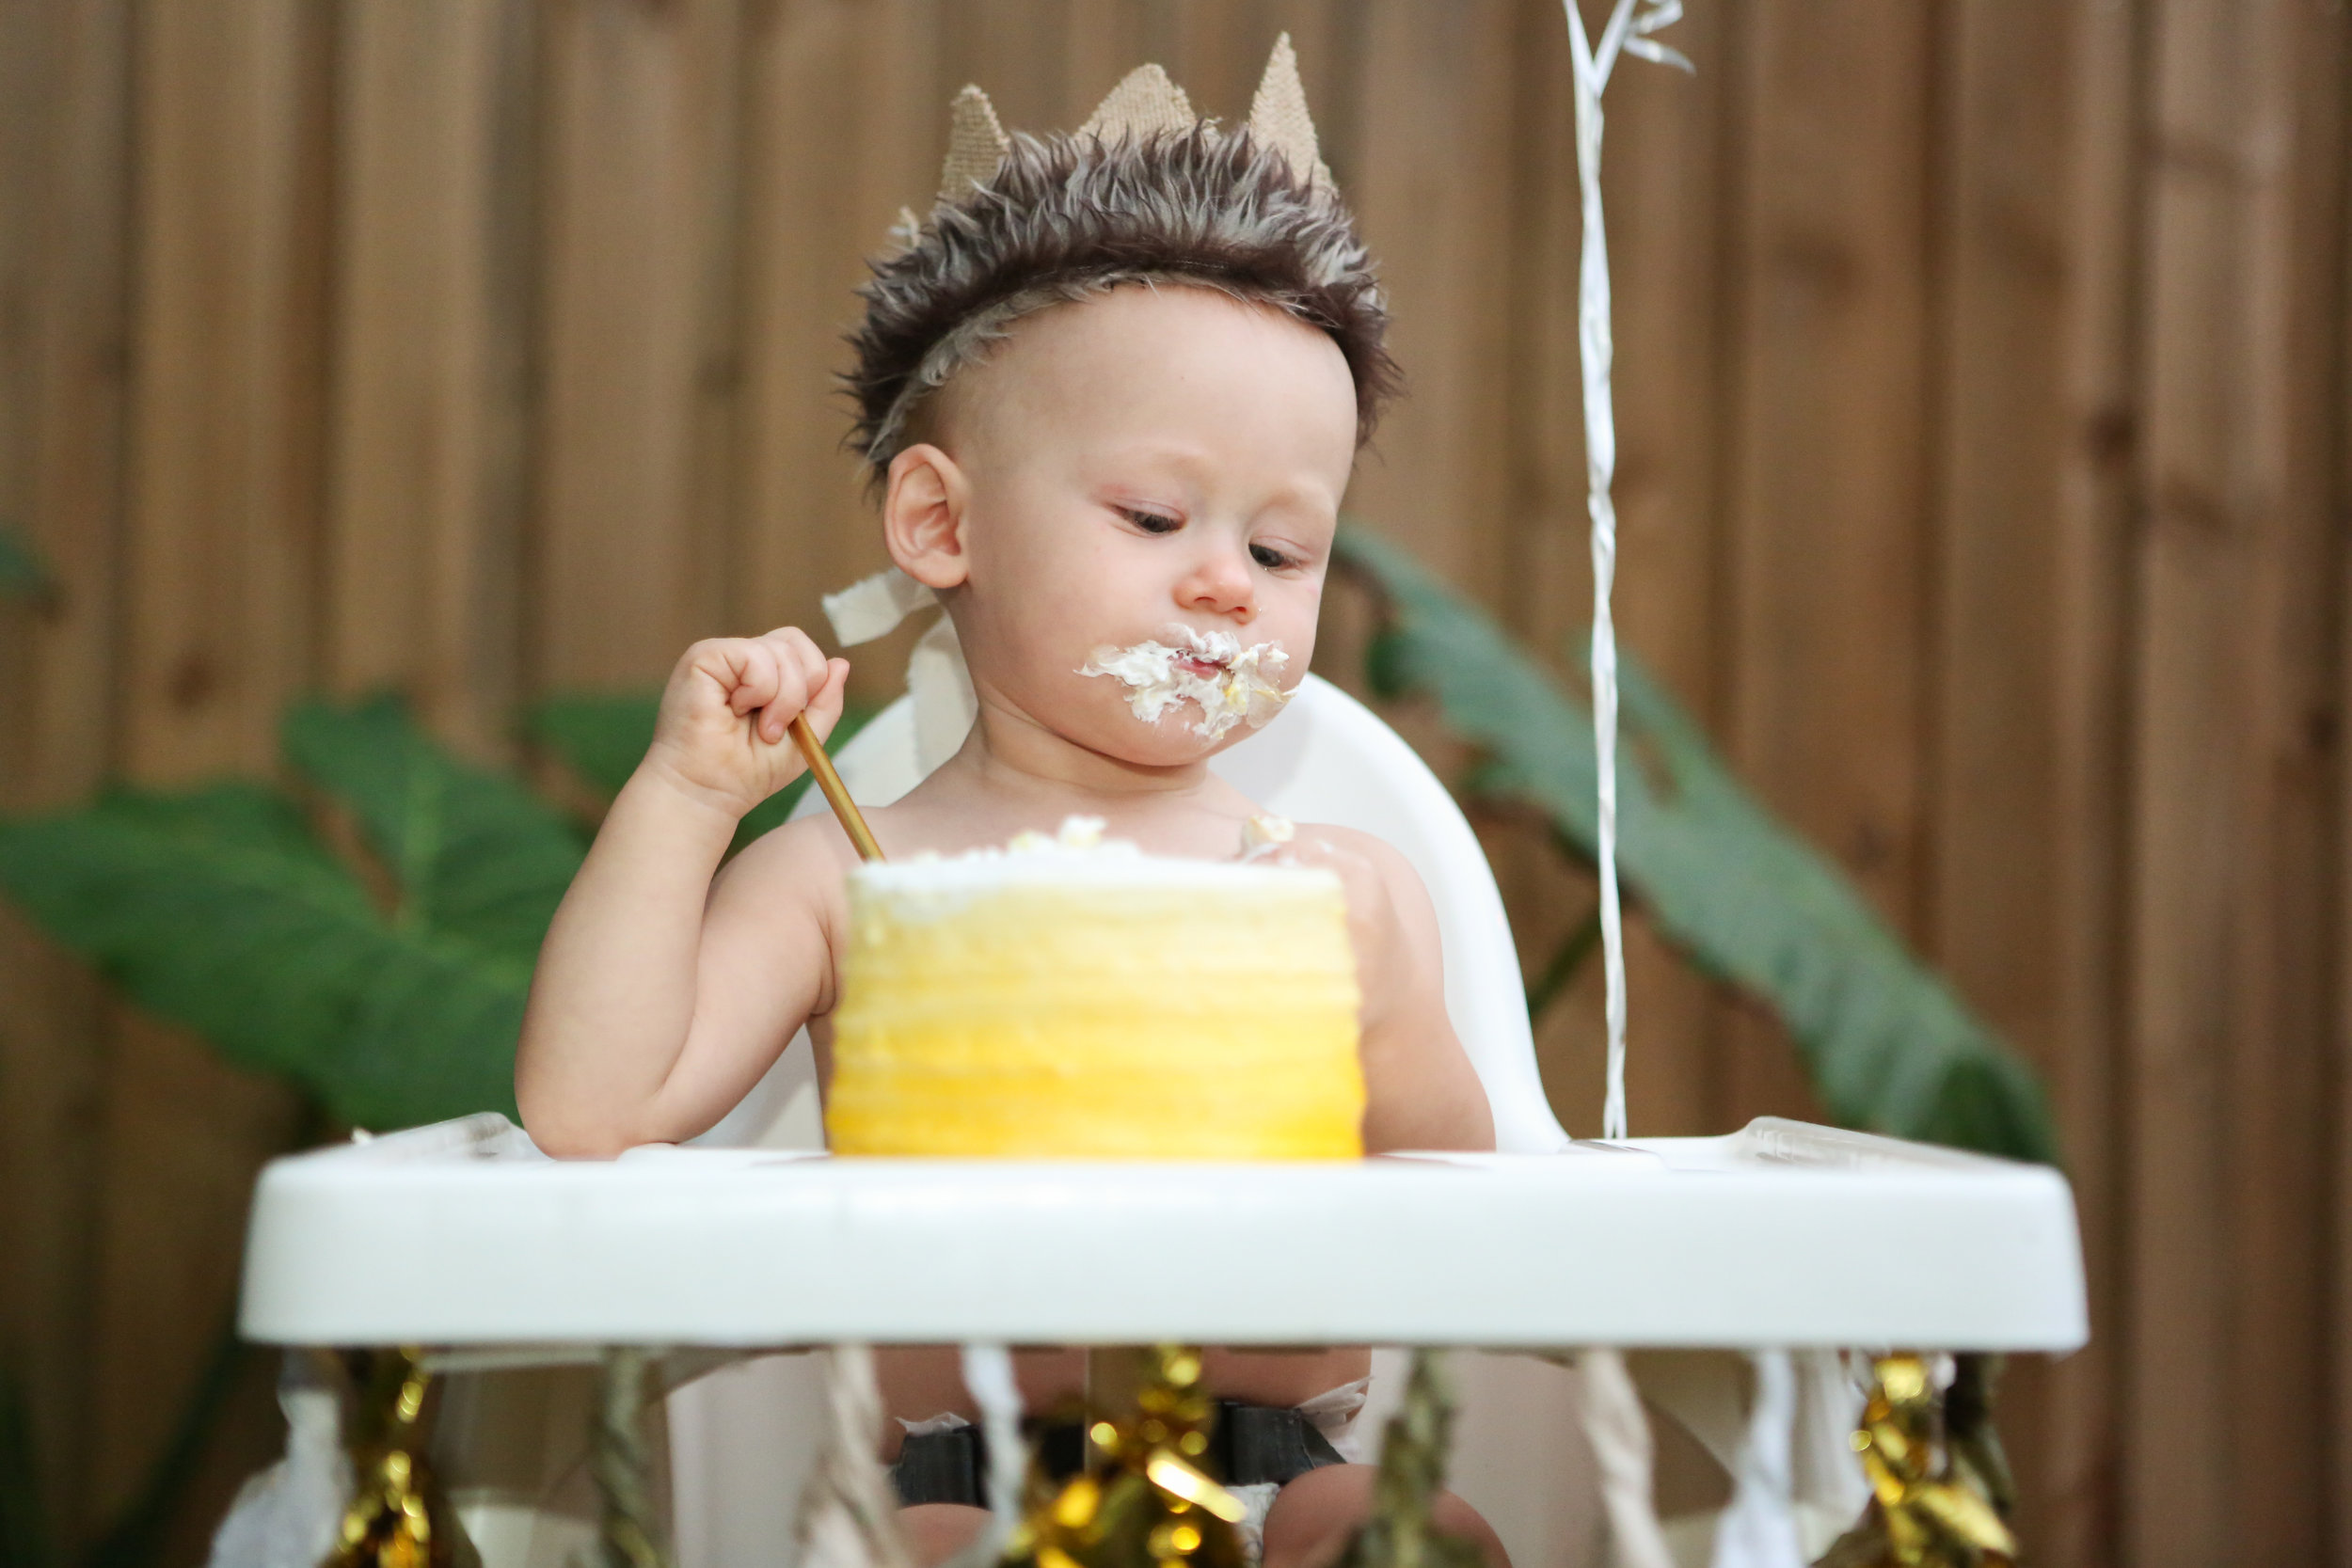 family-photography-orlando-kelly-ed-austin-birthday-party-cake.jpg